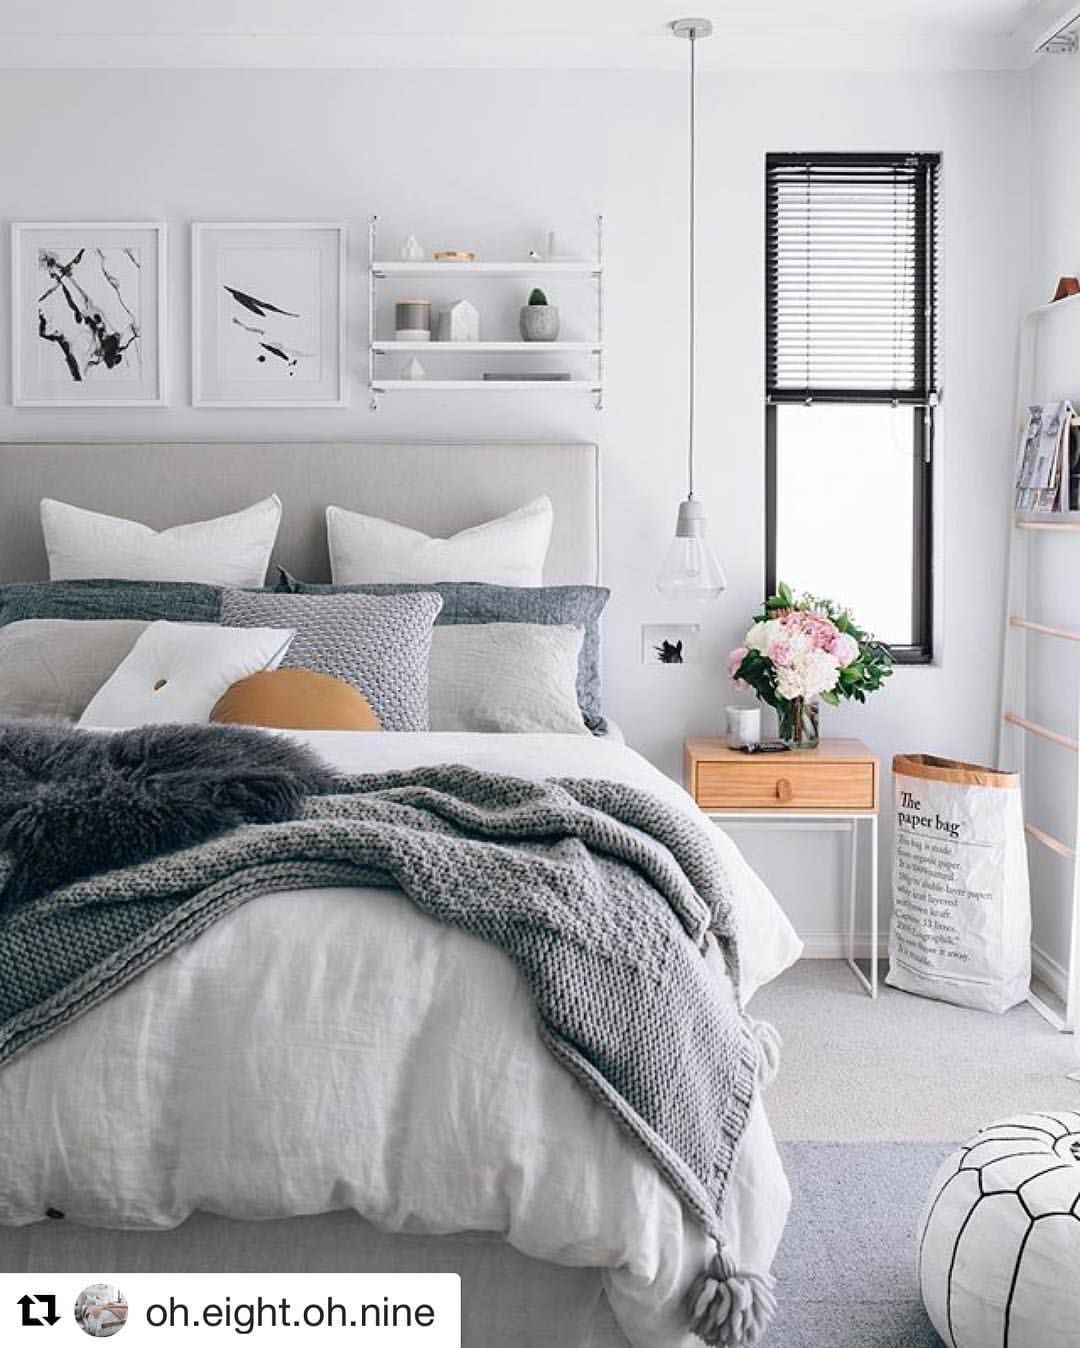 Todayus inspiration from oheightohne home bedroom